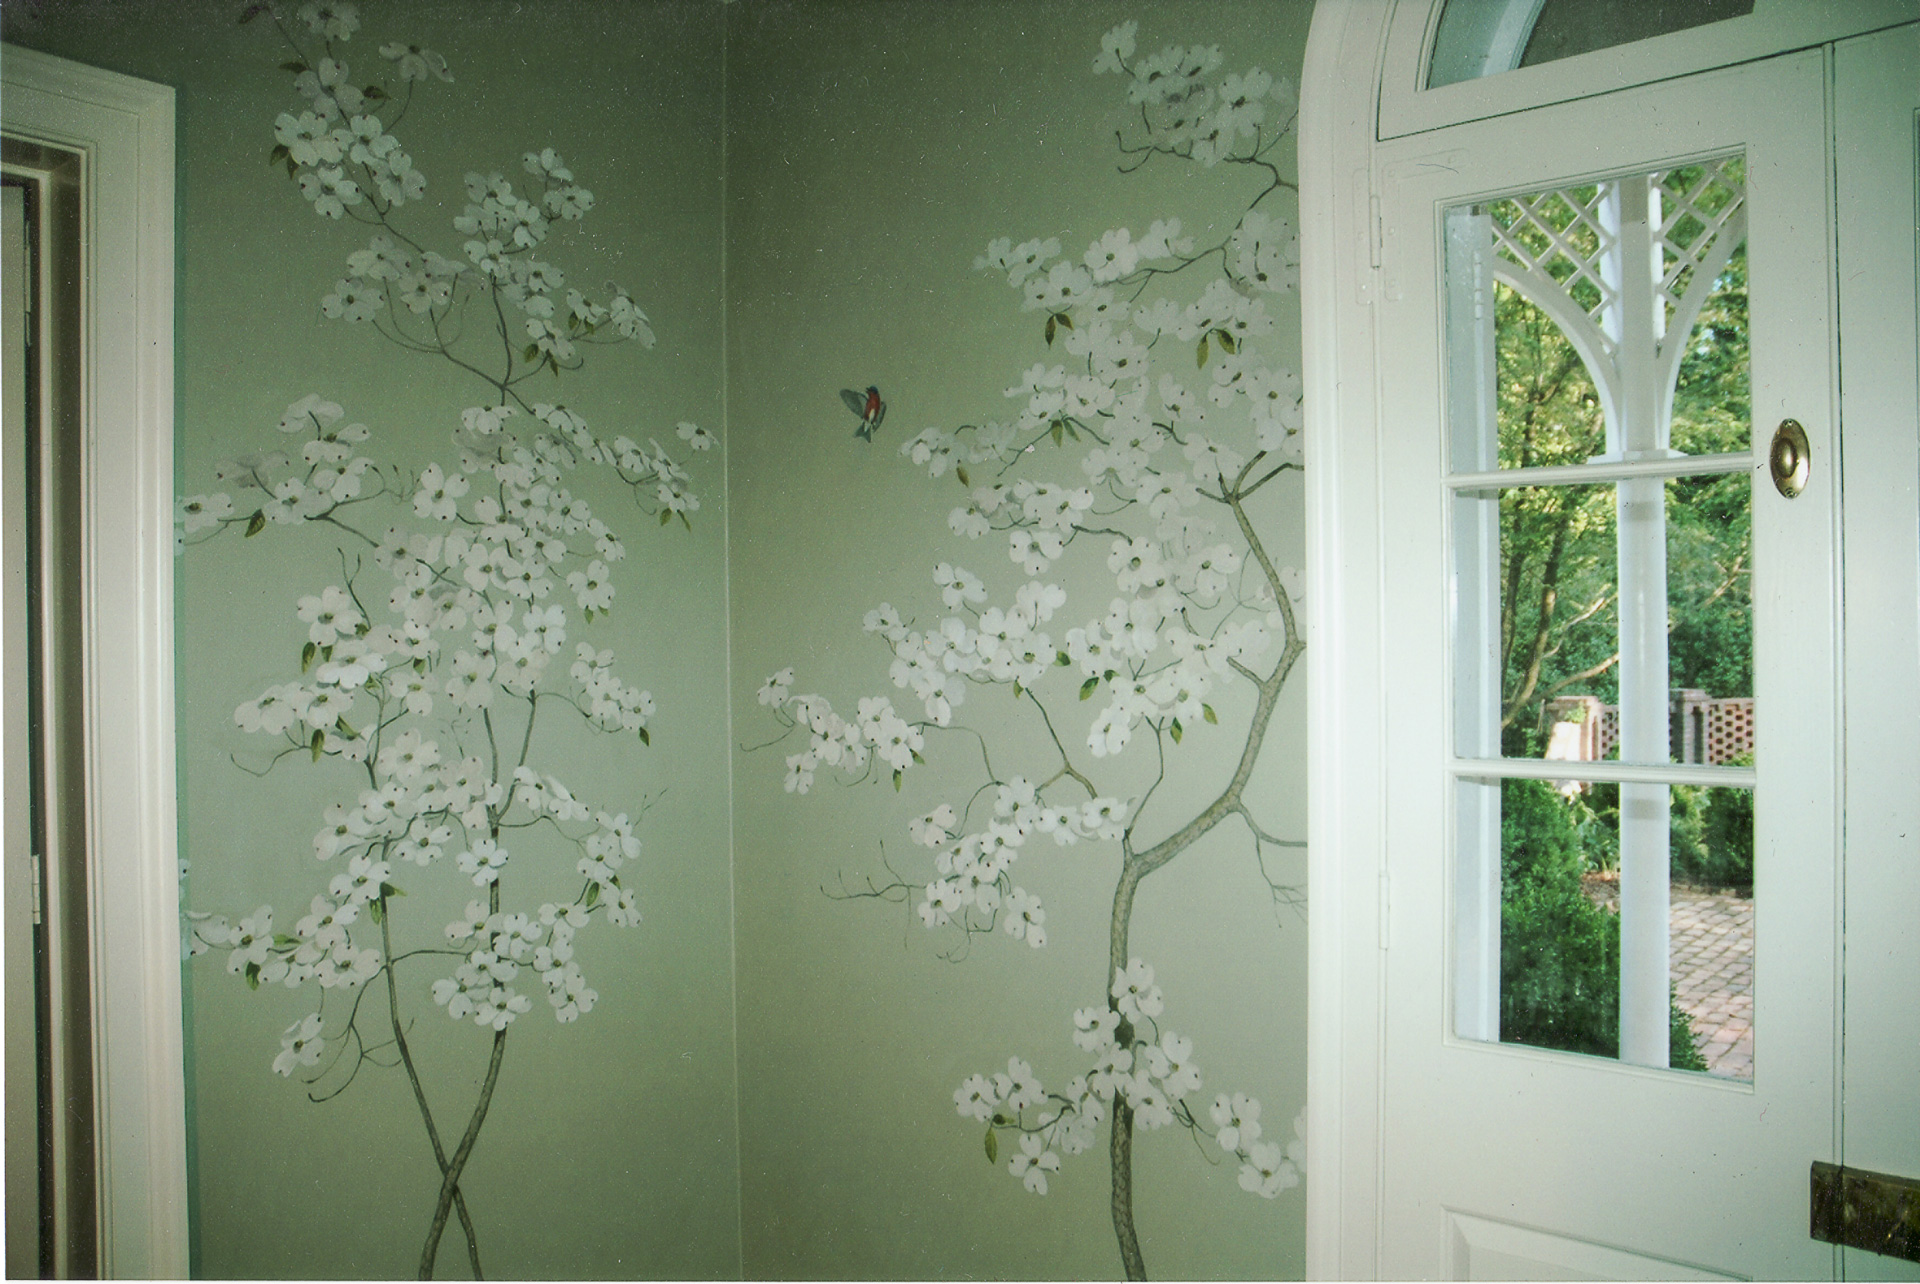 Restored wallpaper illustrating flowering dogwood and bird flying